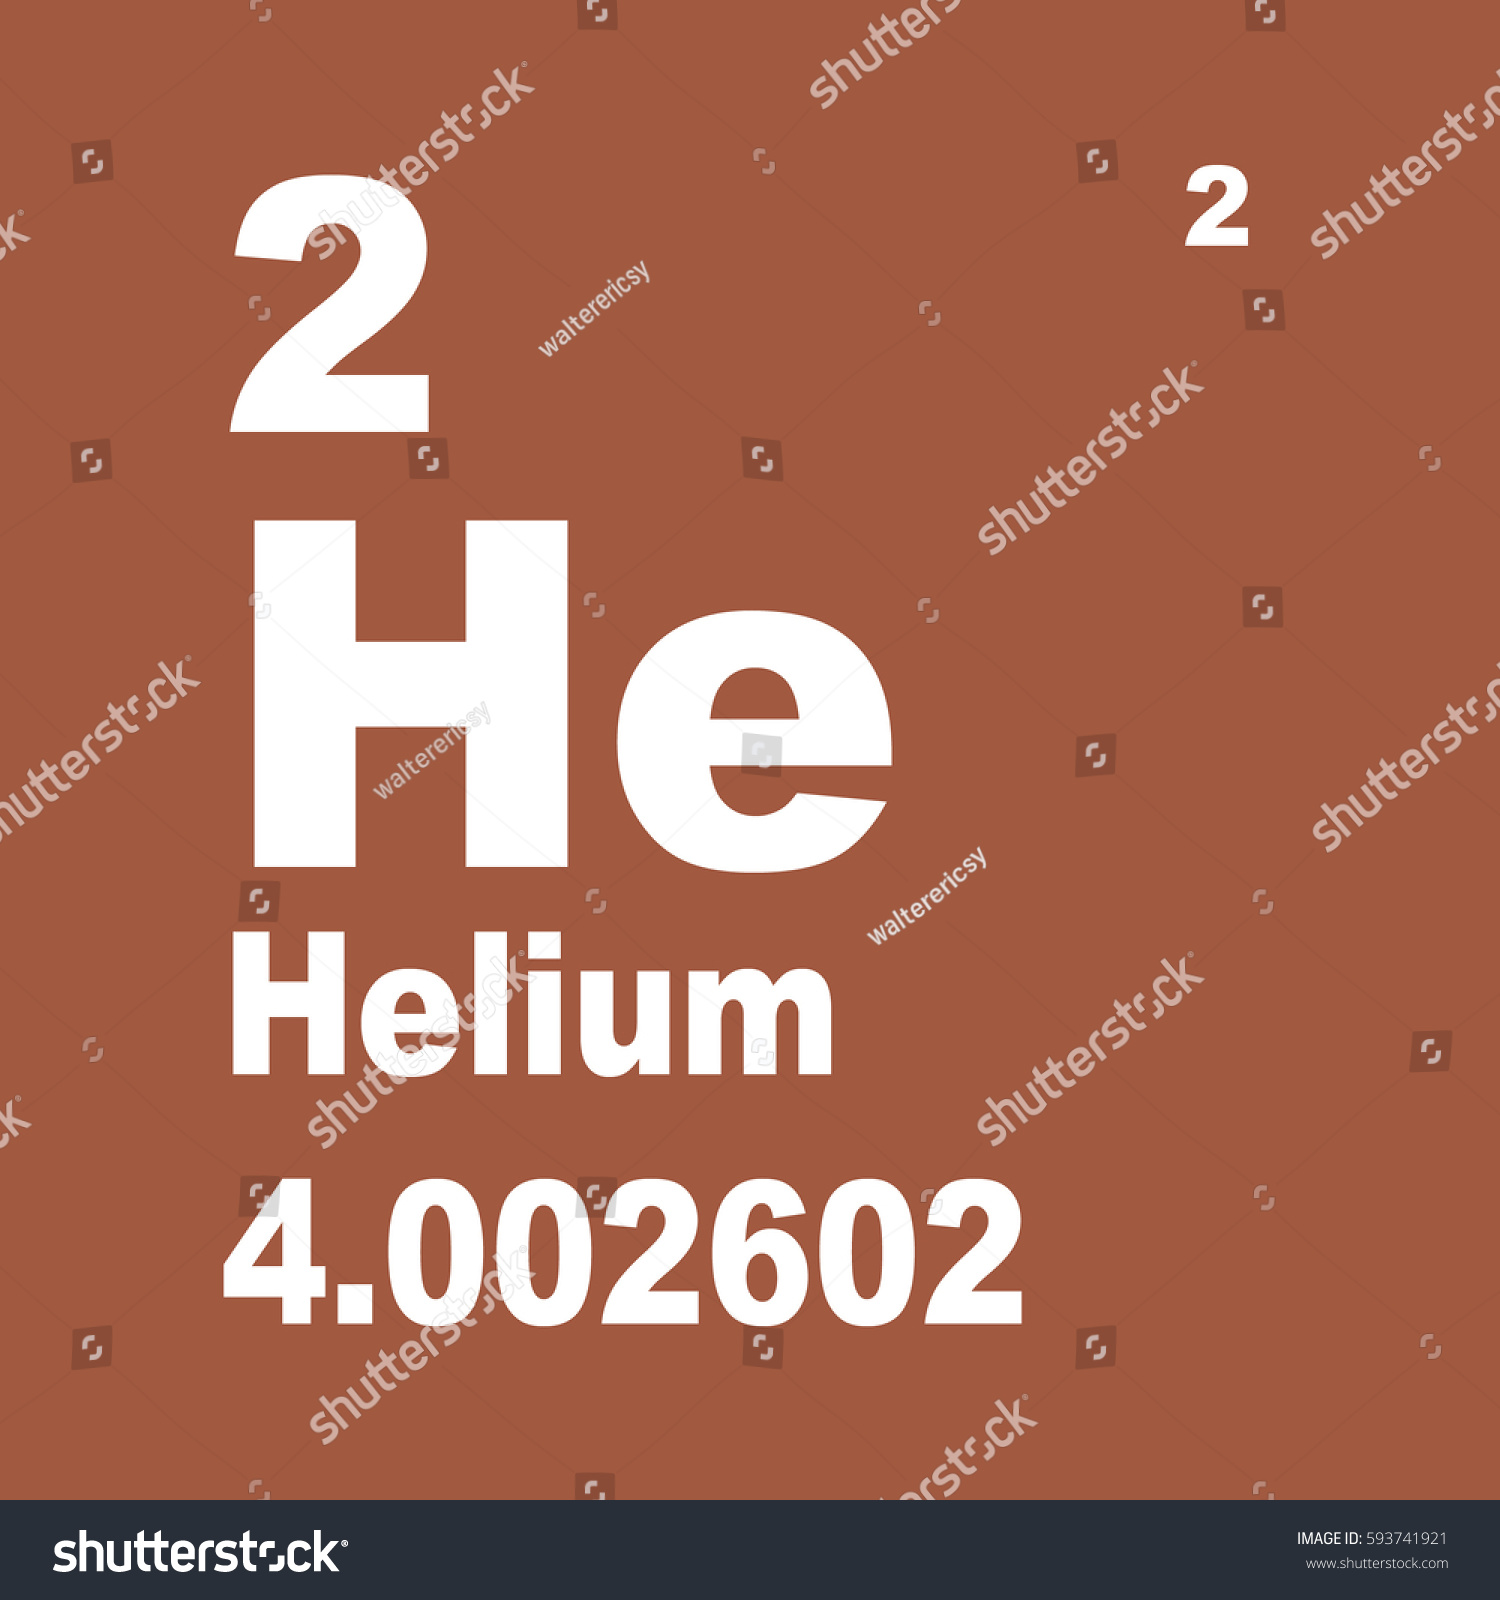 Periodic table fun facts image collections periodic table images helium periodic table facts image collections periodic table images helium periodic table facts choice image periodic gamestrikefo Gallery